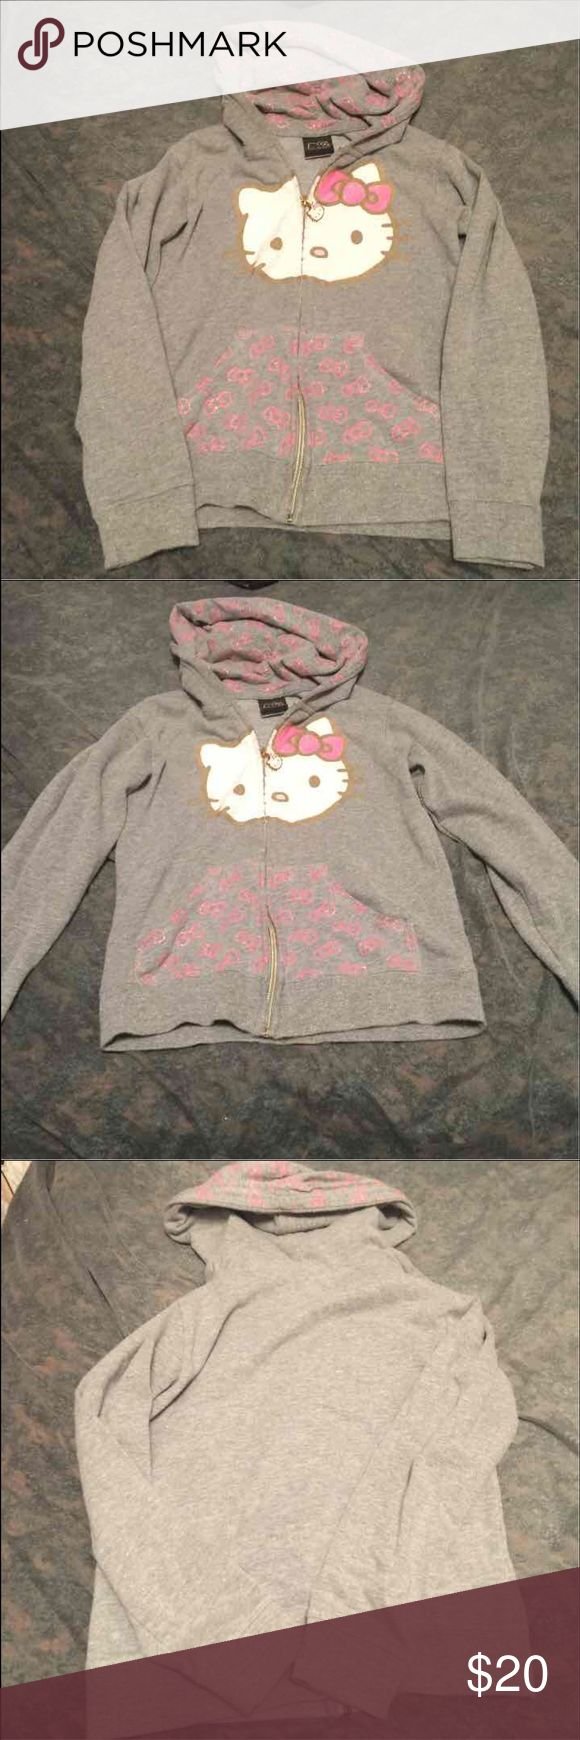 Hello Kitty gray sweatshirt size Large young lady Gray hello Kitty young lady sweatshirt gold hardware with hello Kitty face in good condition pink glitter also on sweatshirt Hello Kitty Shirts & Tops Sweatshirts & Hoodies